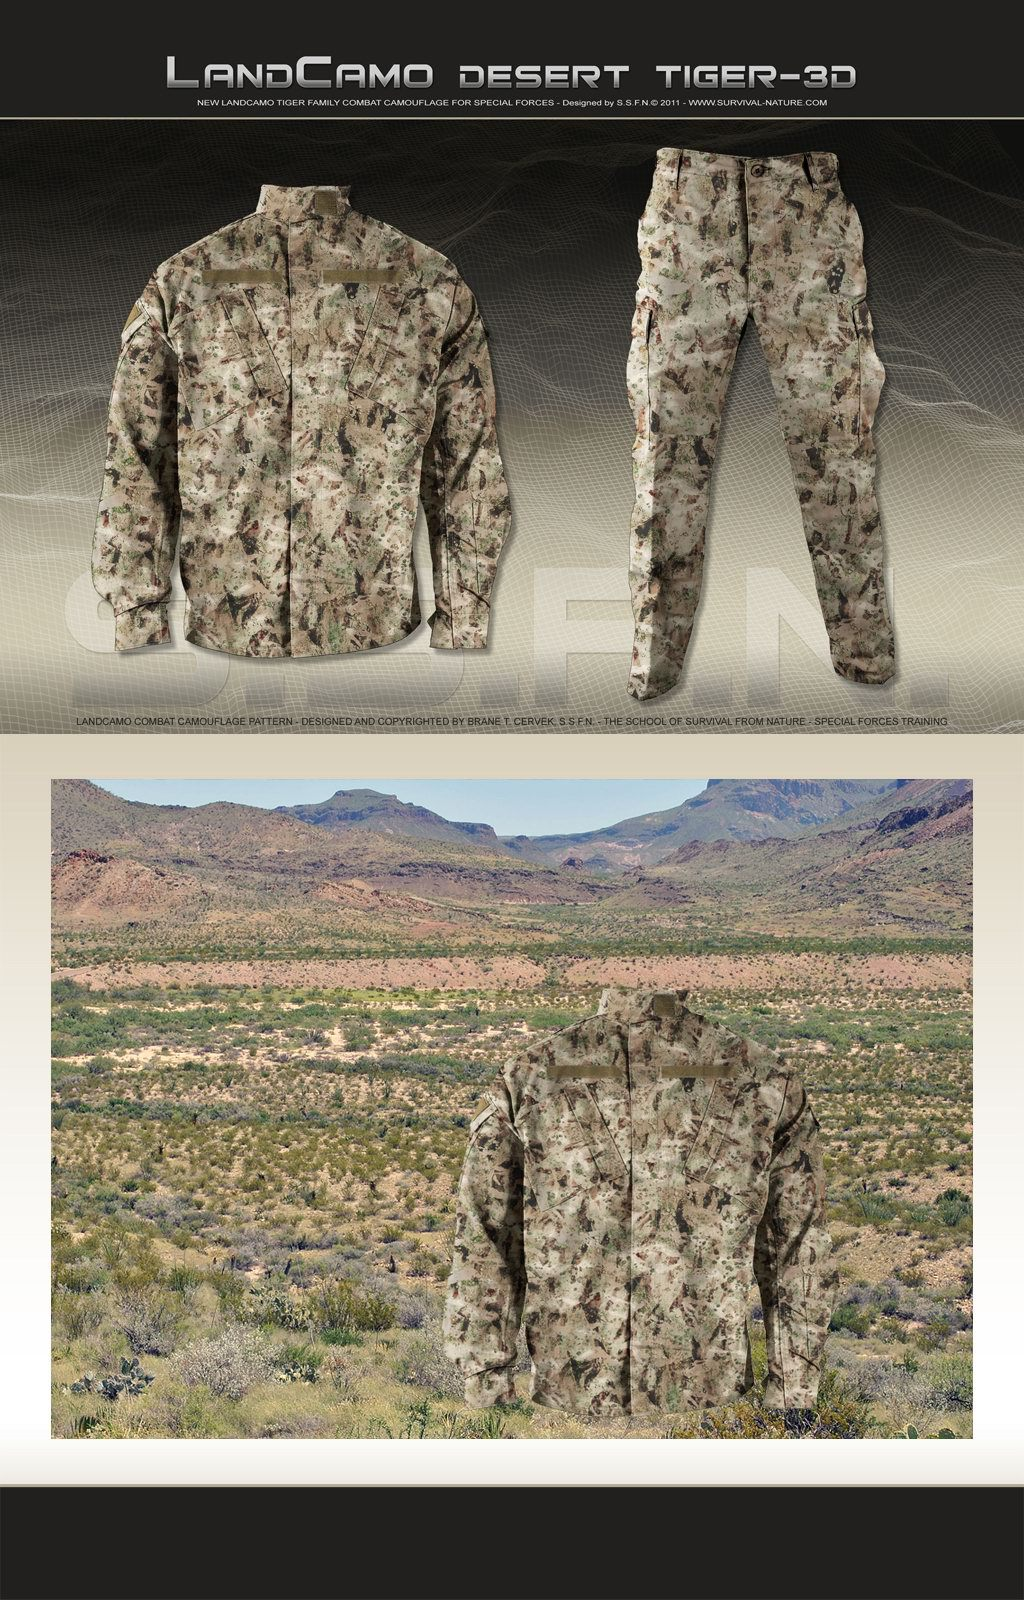 <!--:en-->SSFN ExtremePro LandCamo Terrain-Specific/Mission-Specific Digital Combat Camouflage Patterns <!--:-->